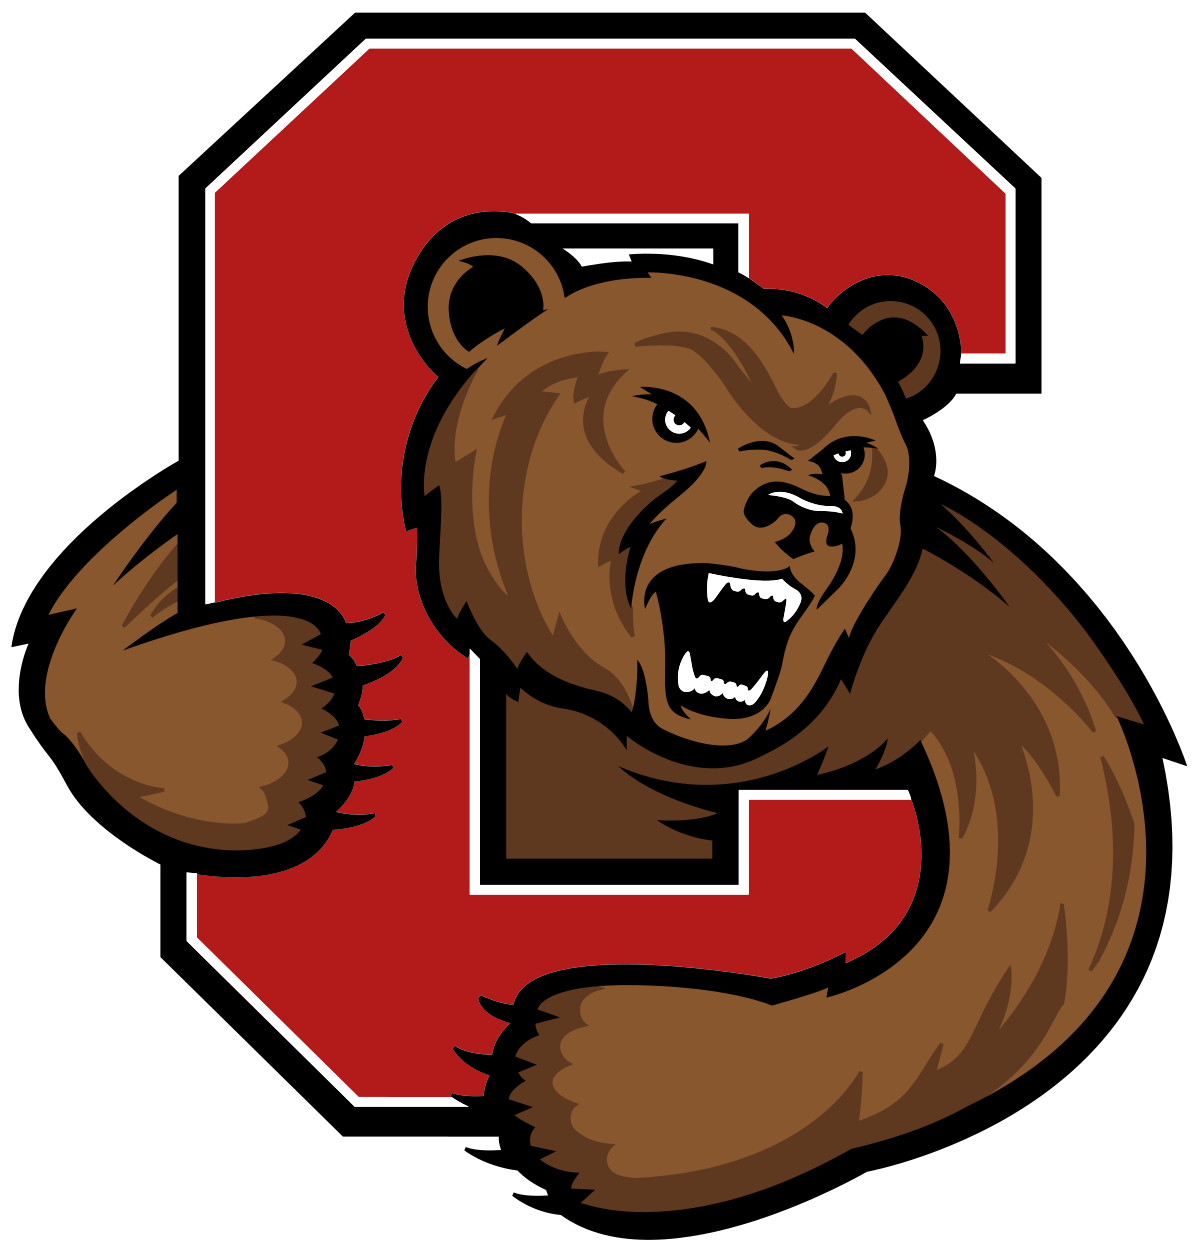 Man wrestling bear clipart png free download Cornell Big Red - Wikipedia png free download